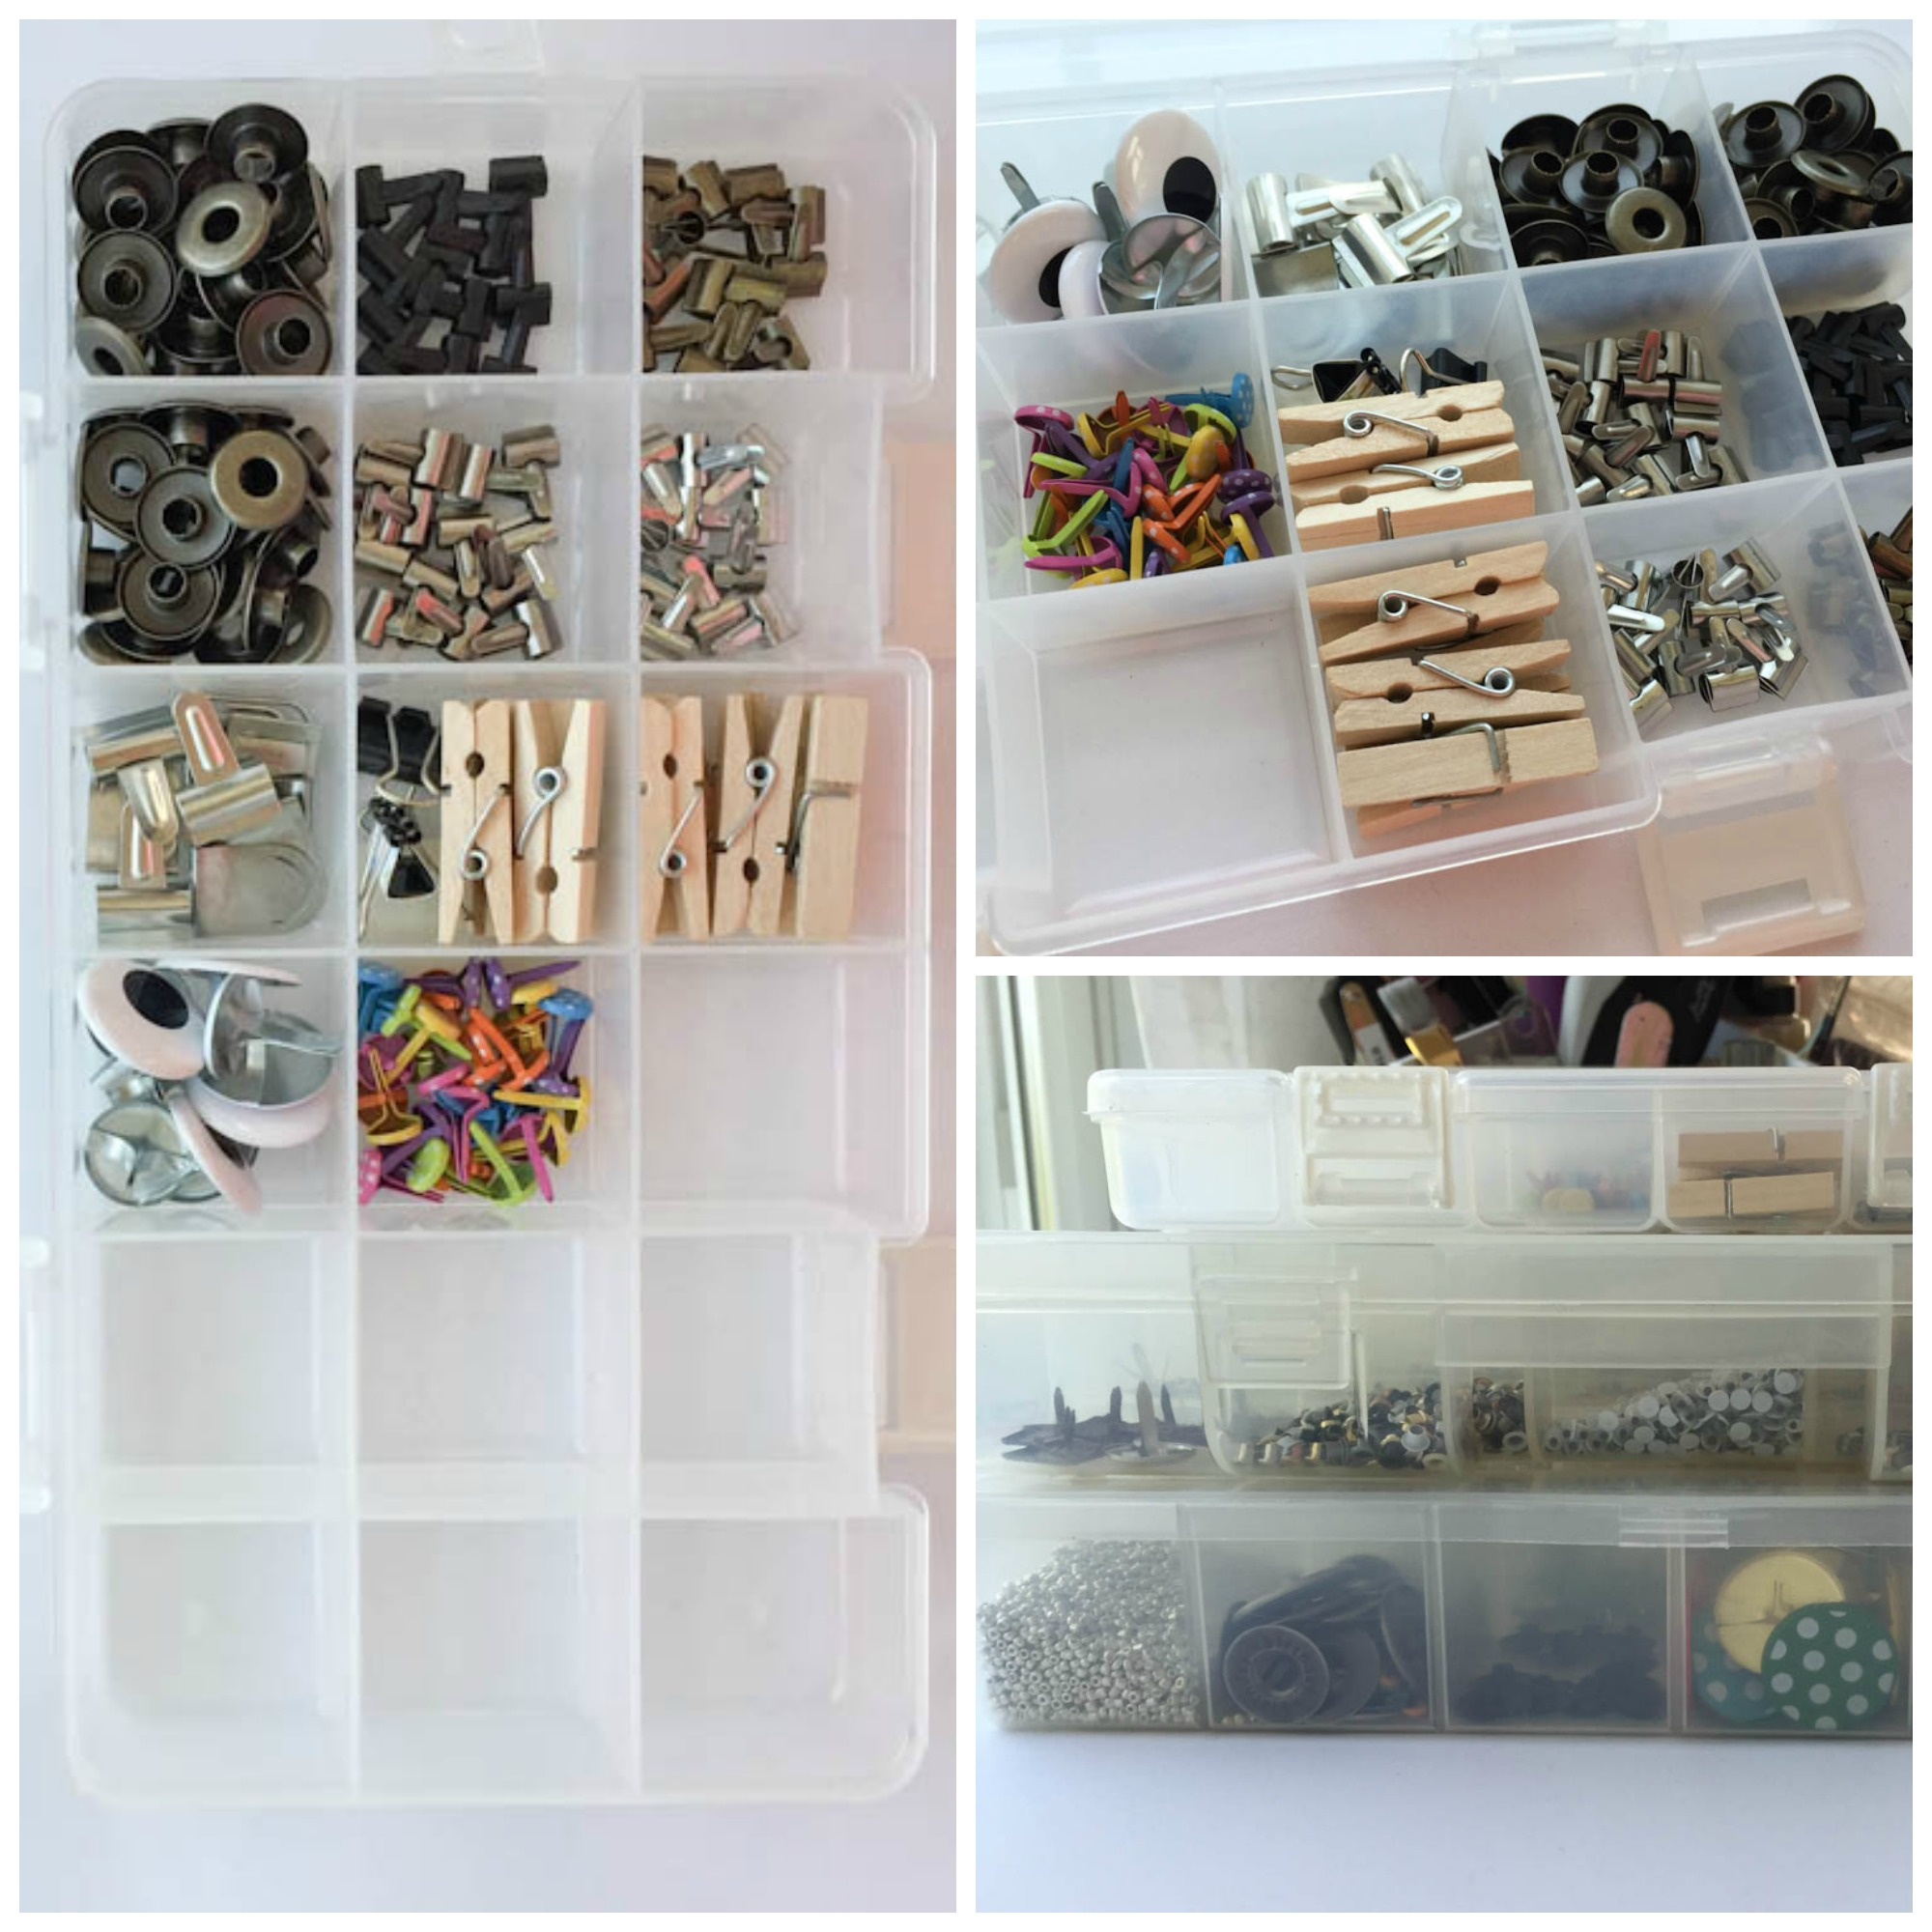 crafts supplies organized in plastic boxes